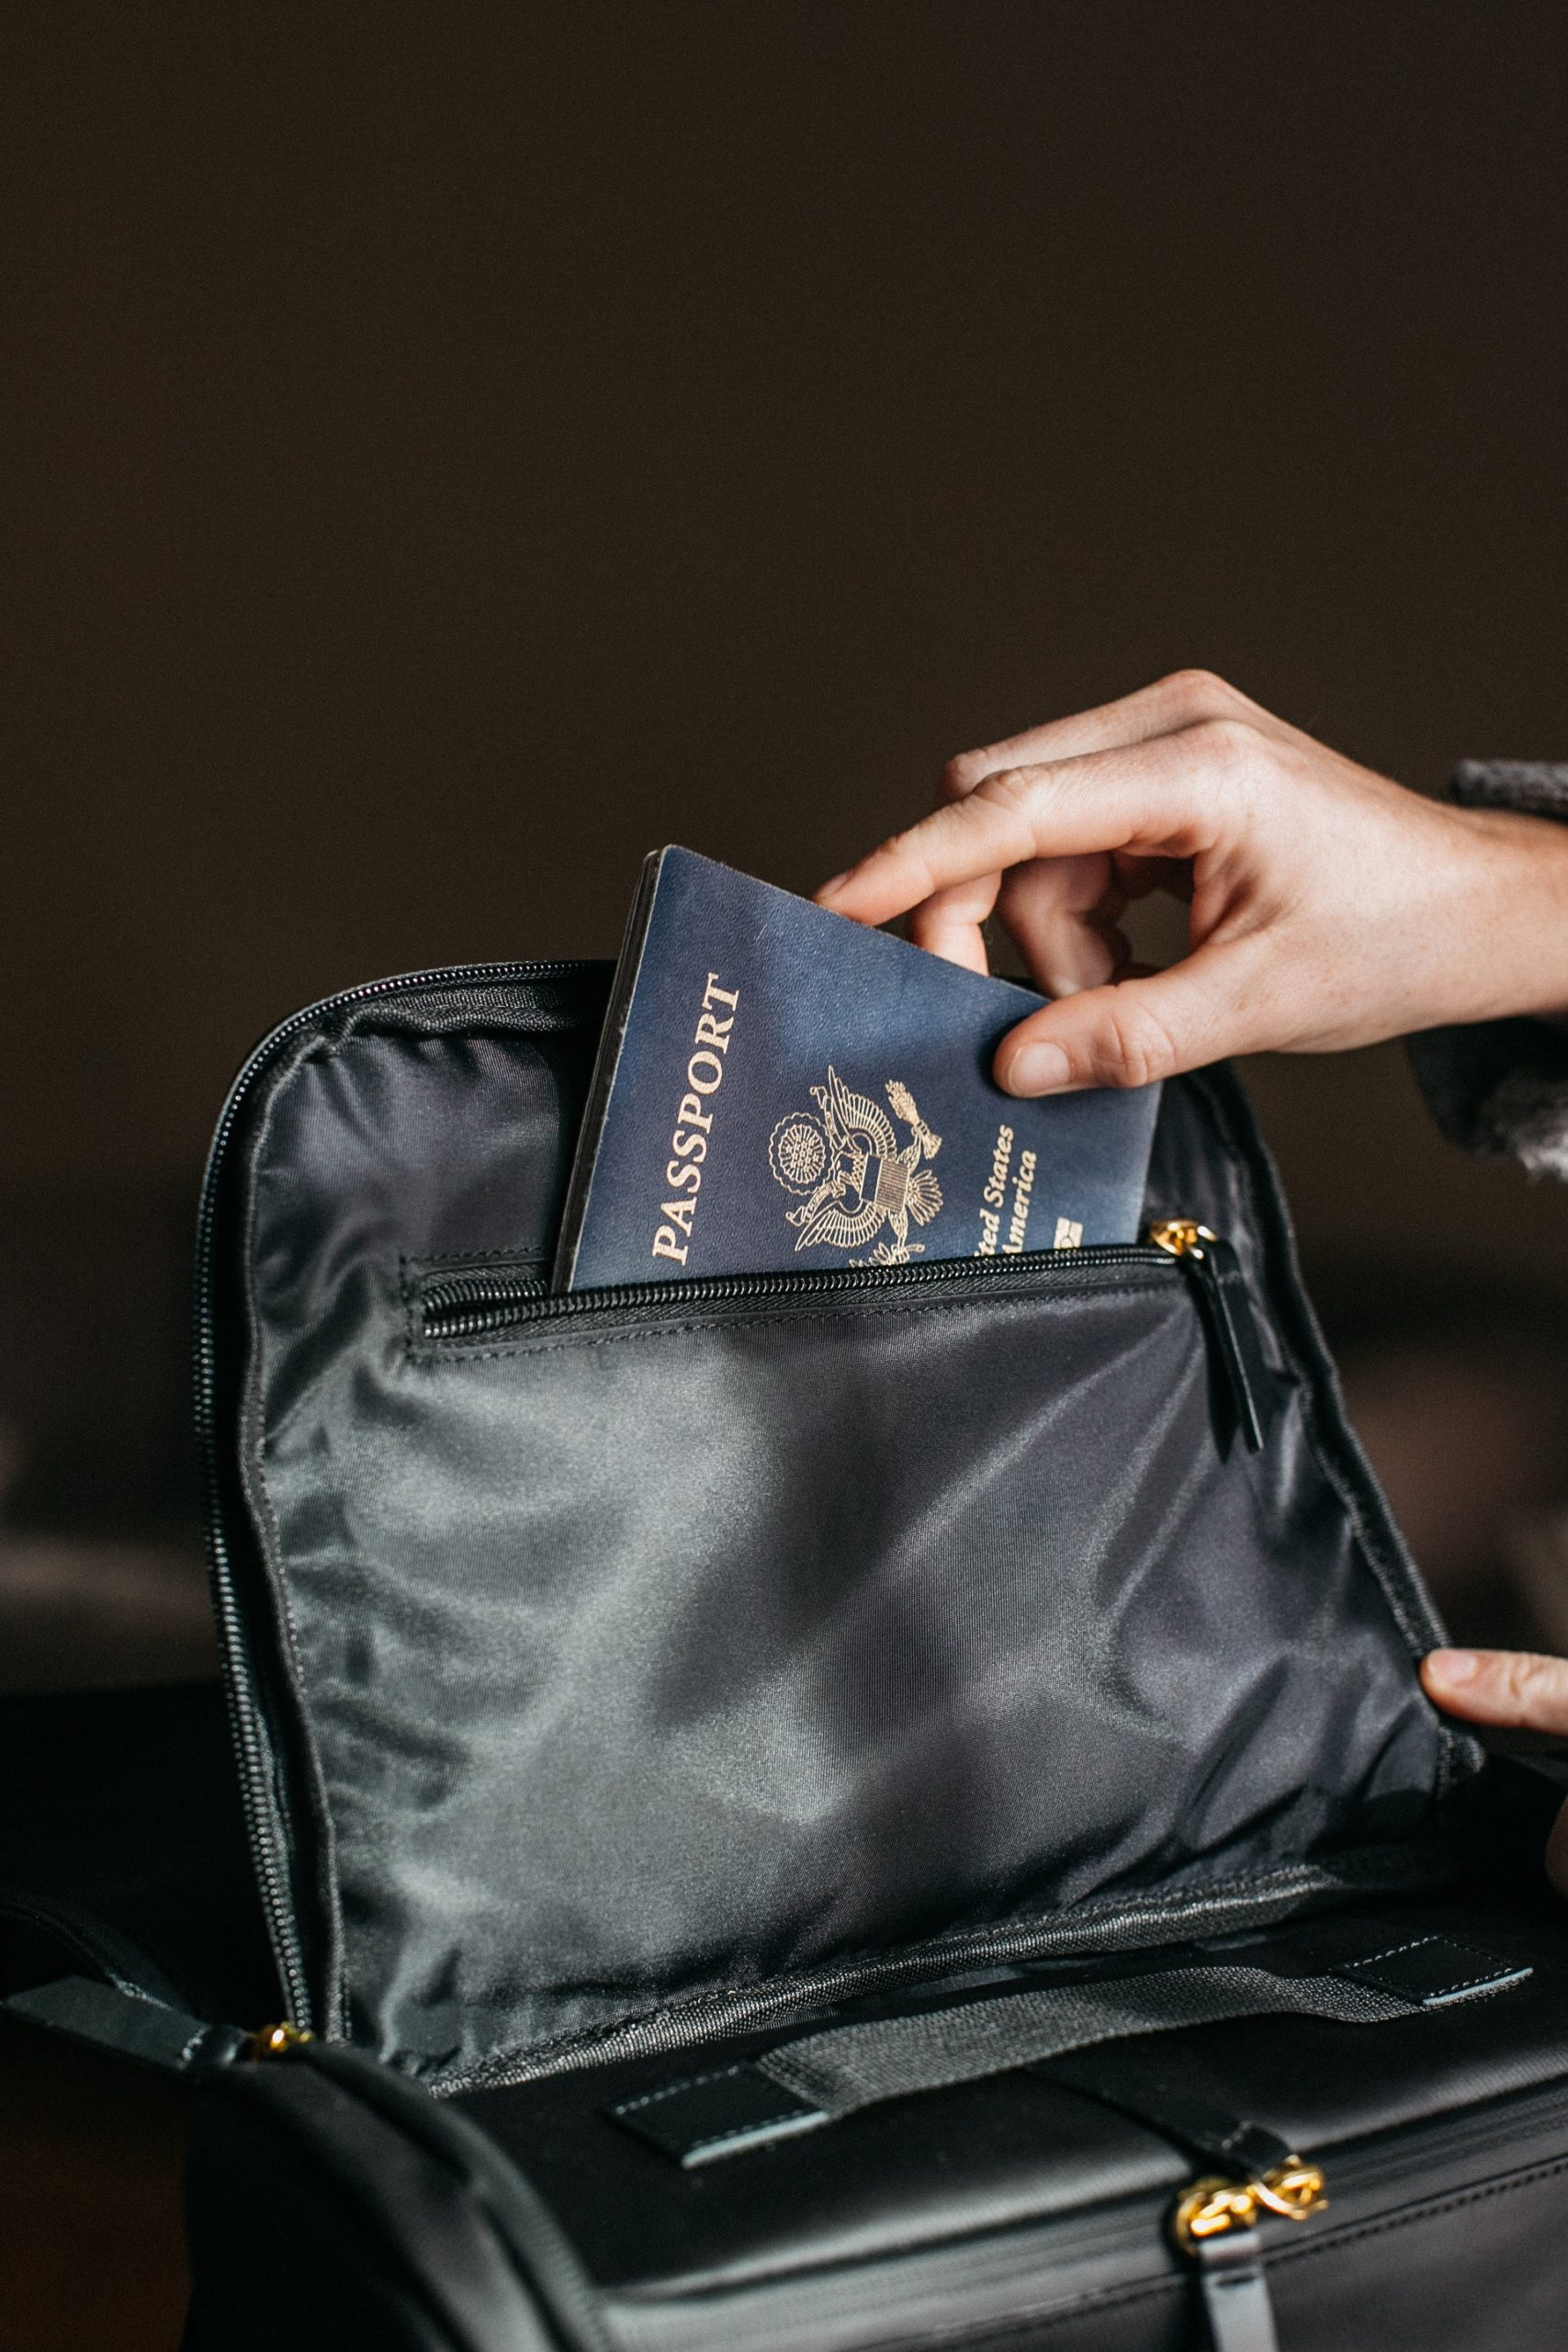 https://www.mynotarychichester.co.uk/wp-content/uploads/2020/06/person-putting-a-passport-on-bag-842961-scaled.jpg